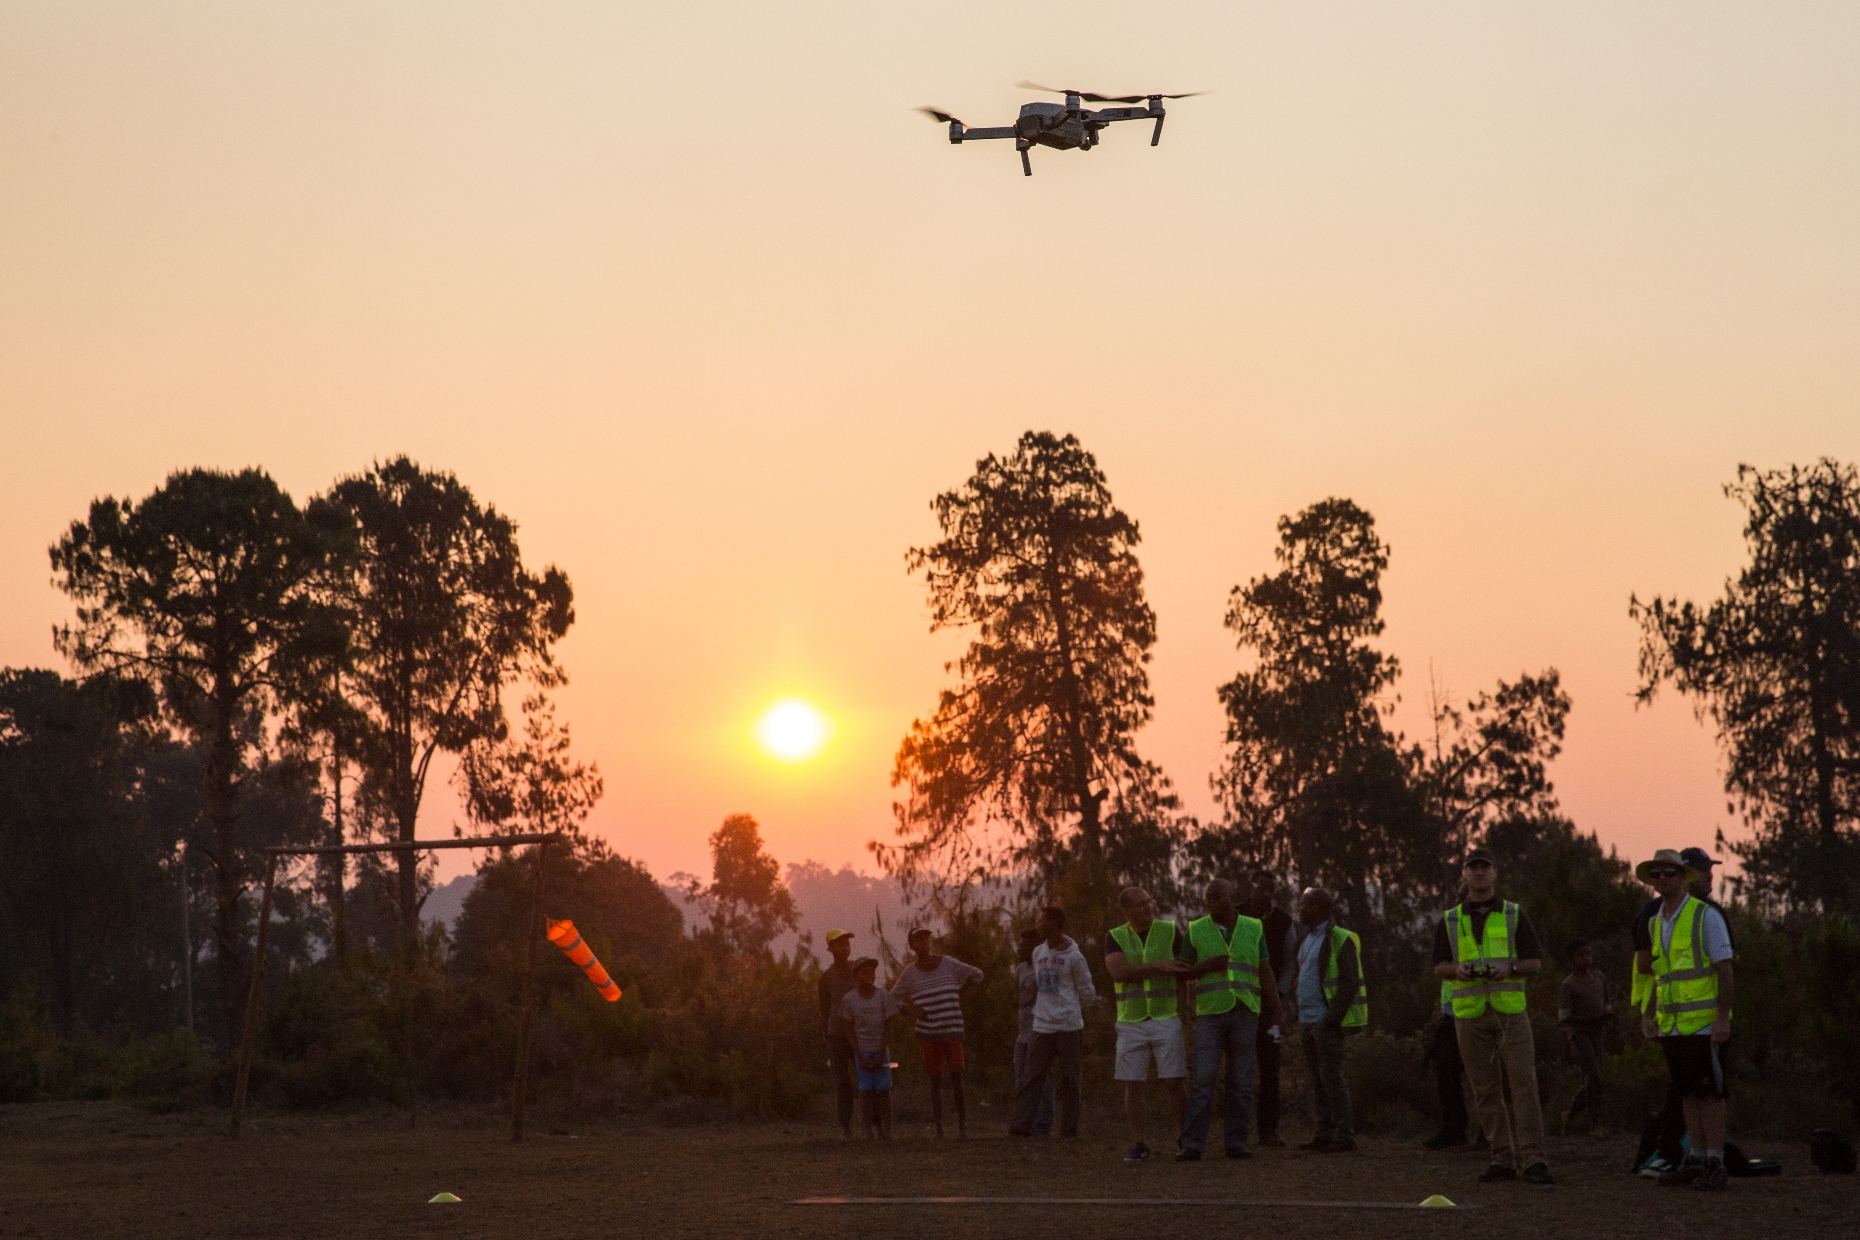 002_Training%20with%20drones-picture%20WFP.jpg